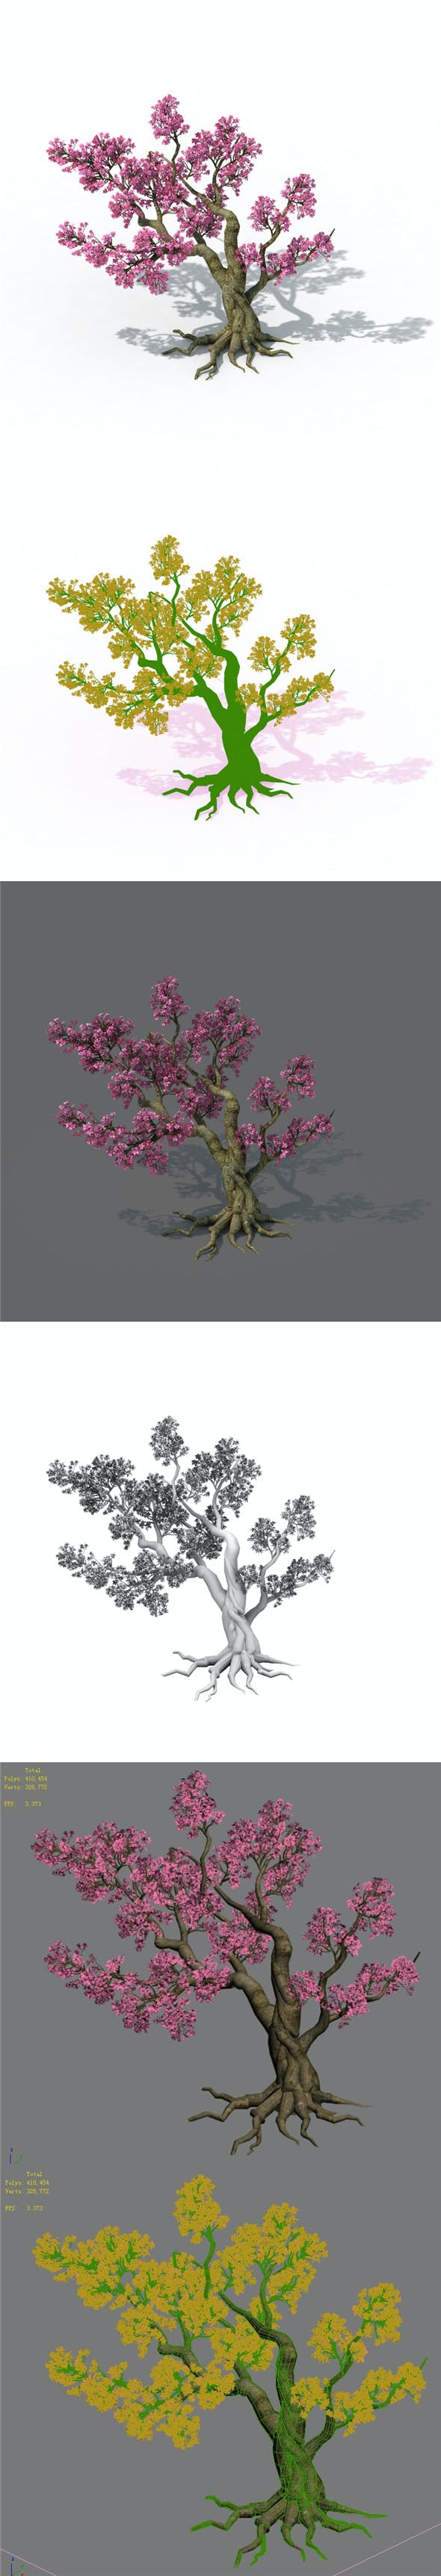 Forest - Peach Blossom Tree 02 - 3DOcean Item for Sale